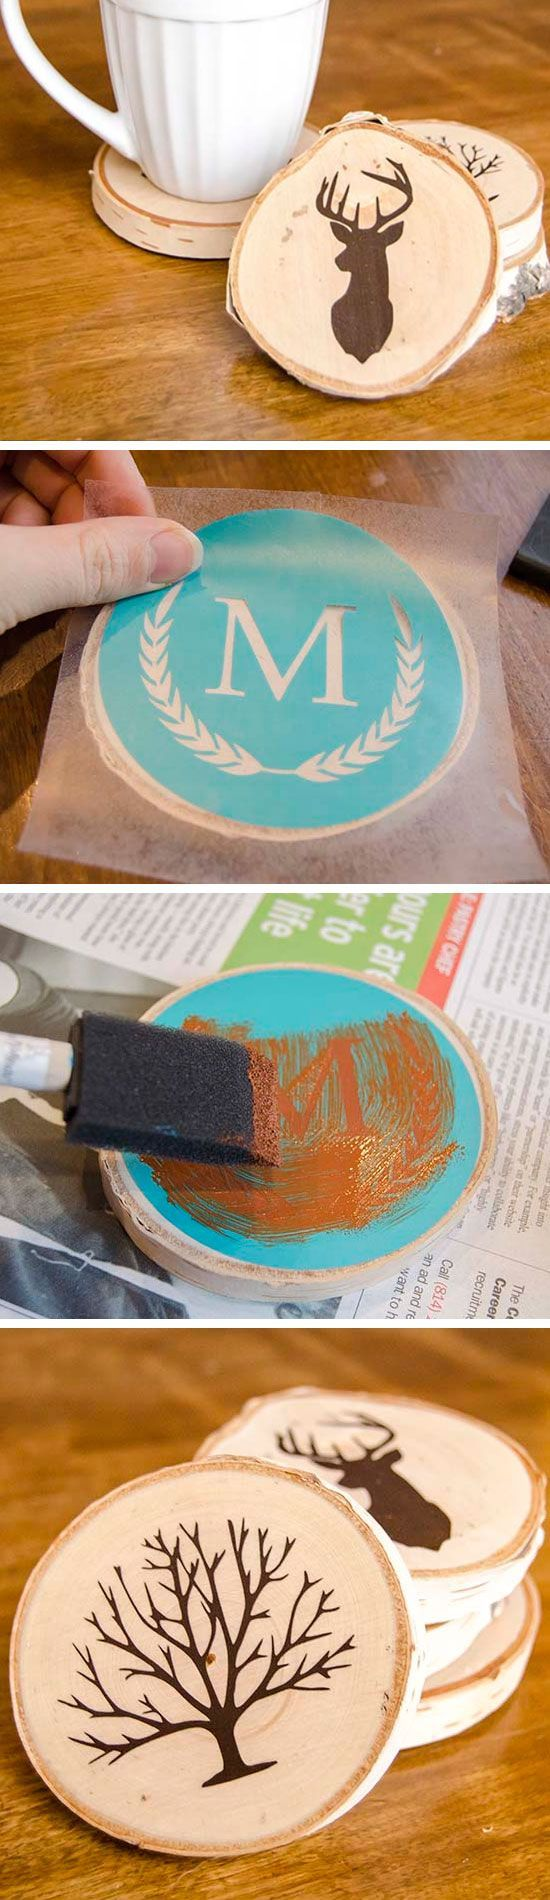 DIY Painted Wood Slice Coasters | Click Pic for 29 DIY Christmas Gift Ideas for Men | Last Minute DIY Christmas Gifts for Friends